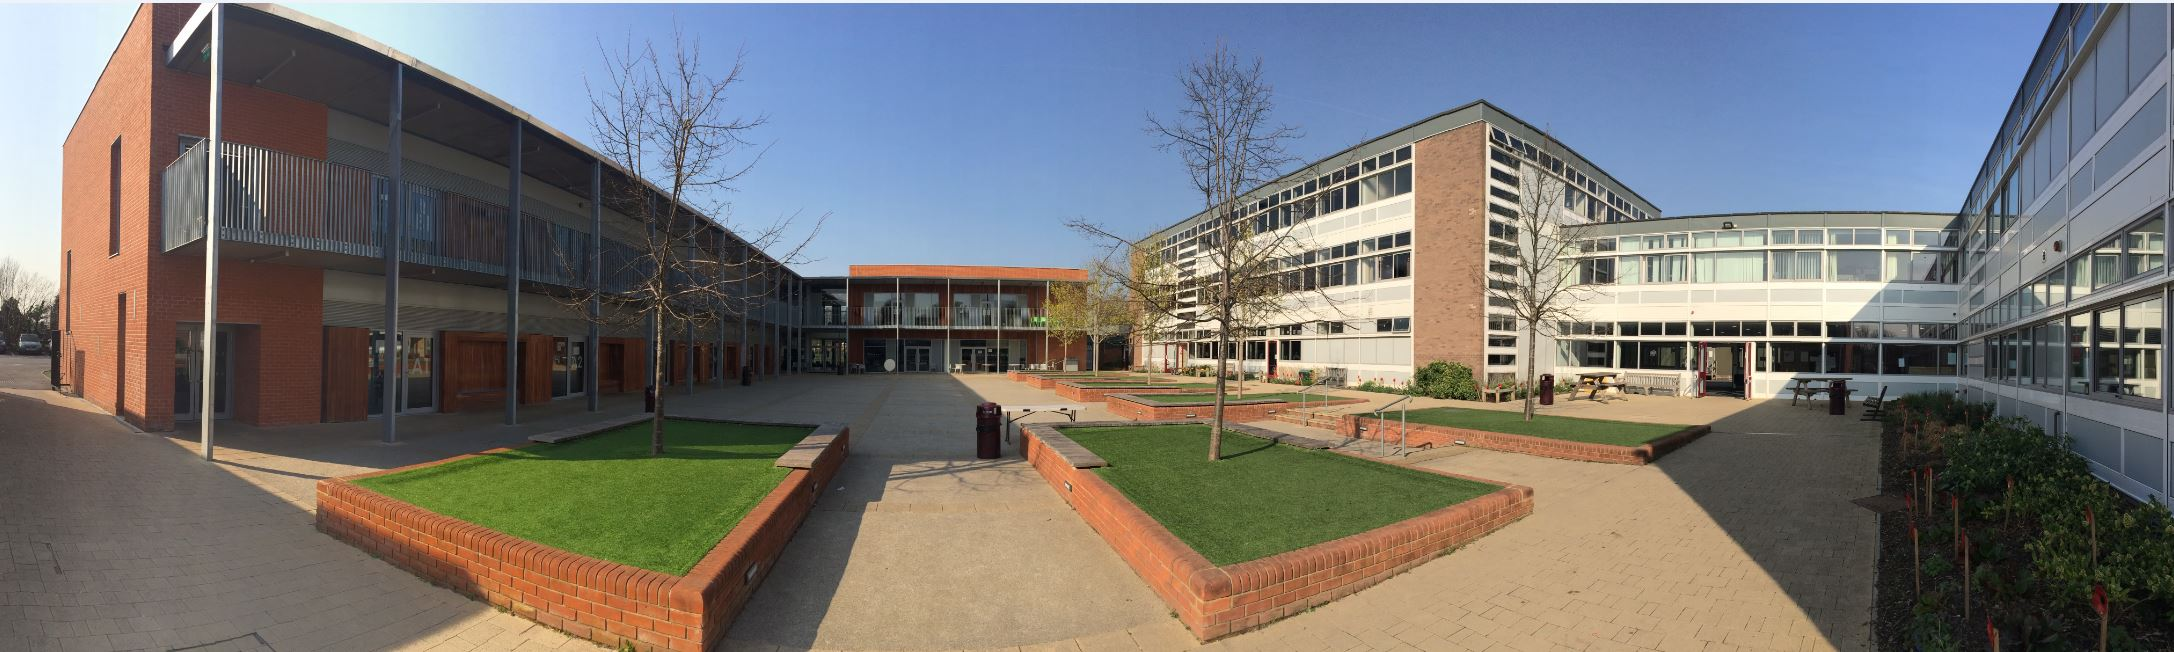 2019-04-01 = CPS Panoramic Courtyard Spring